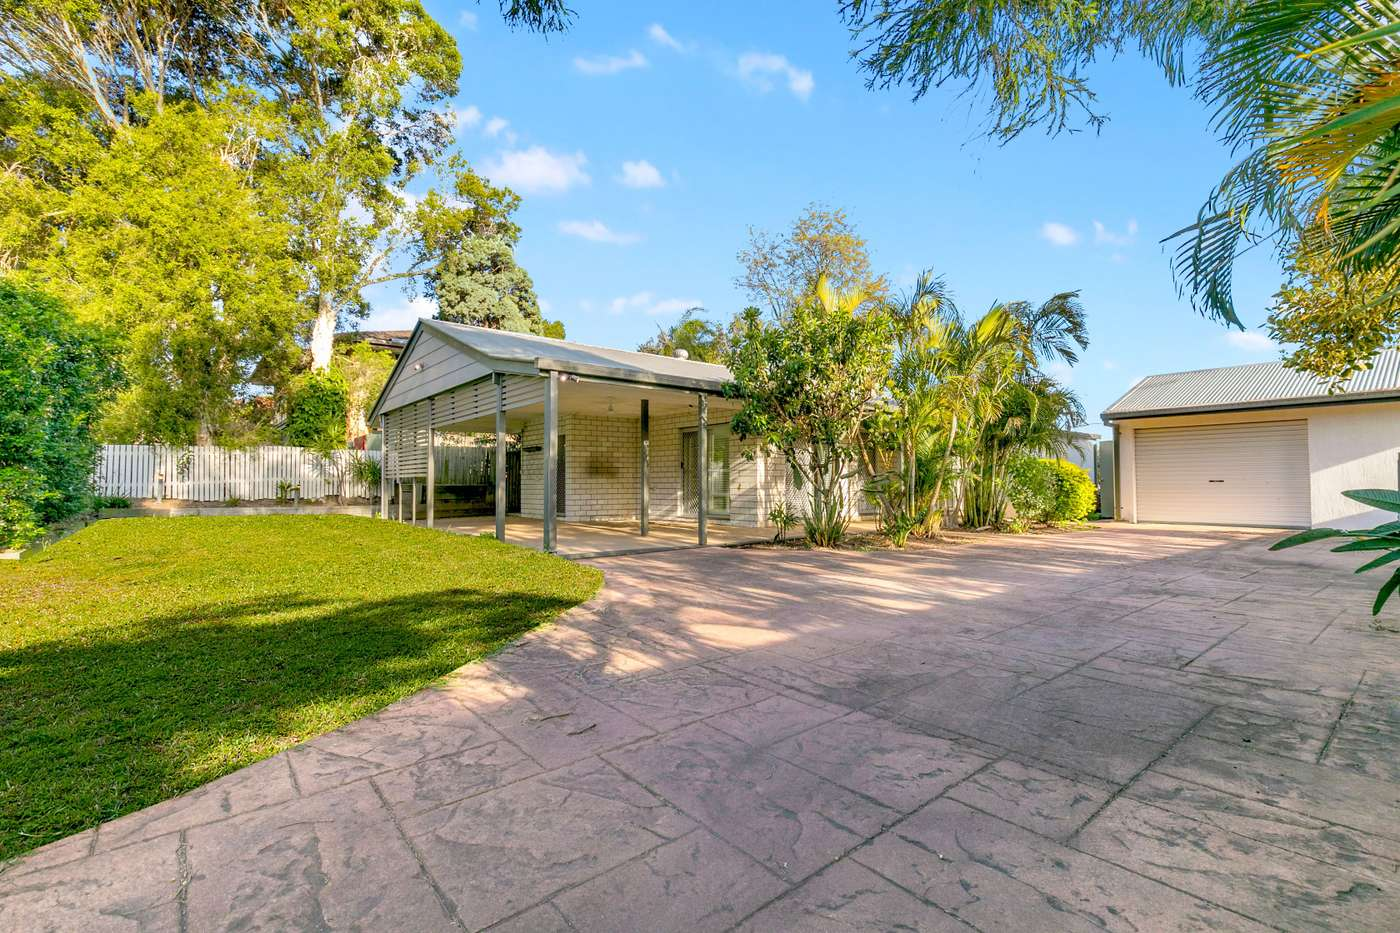 Main view of Homely house listing, 3 Gurnai Street, Belmont, QLD 4153